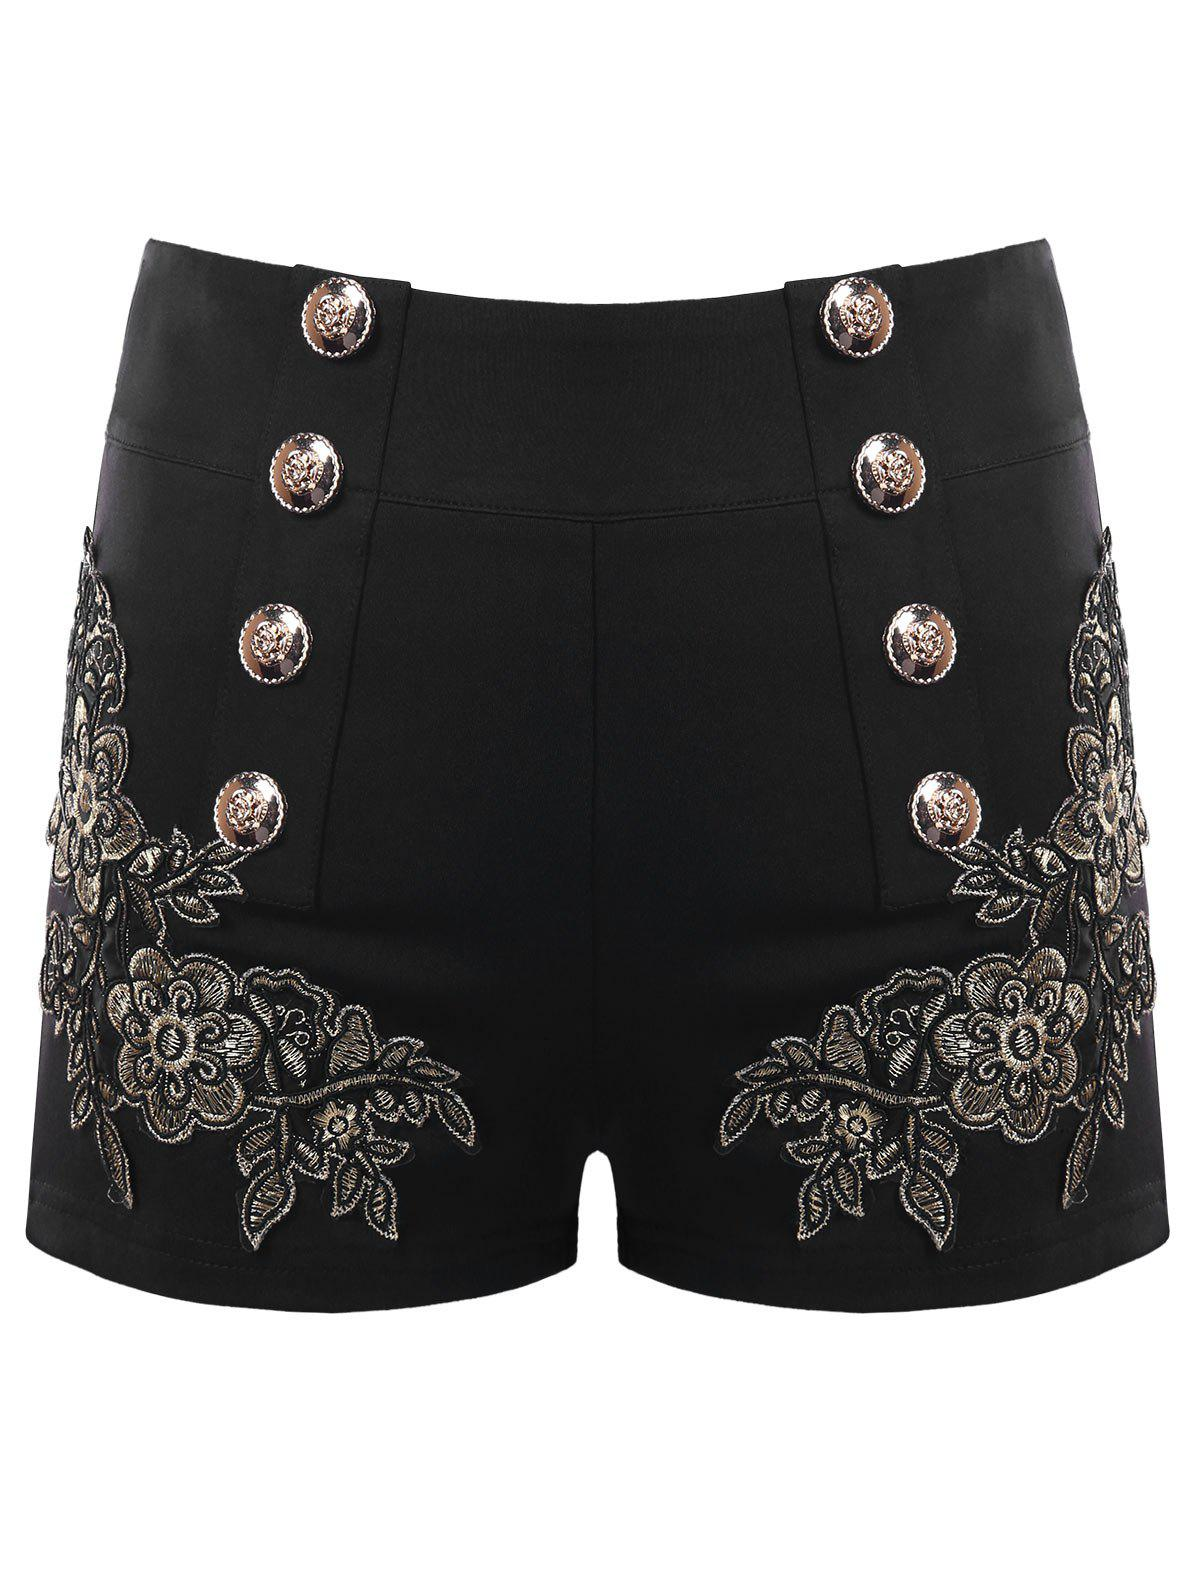 Store Metal Button Embroidery Shorts